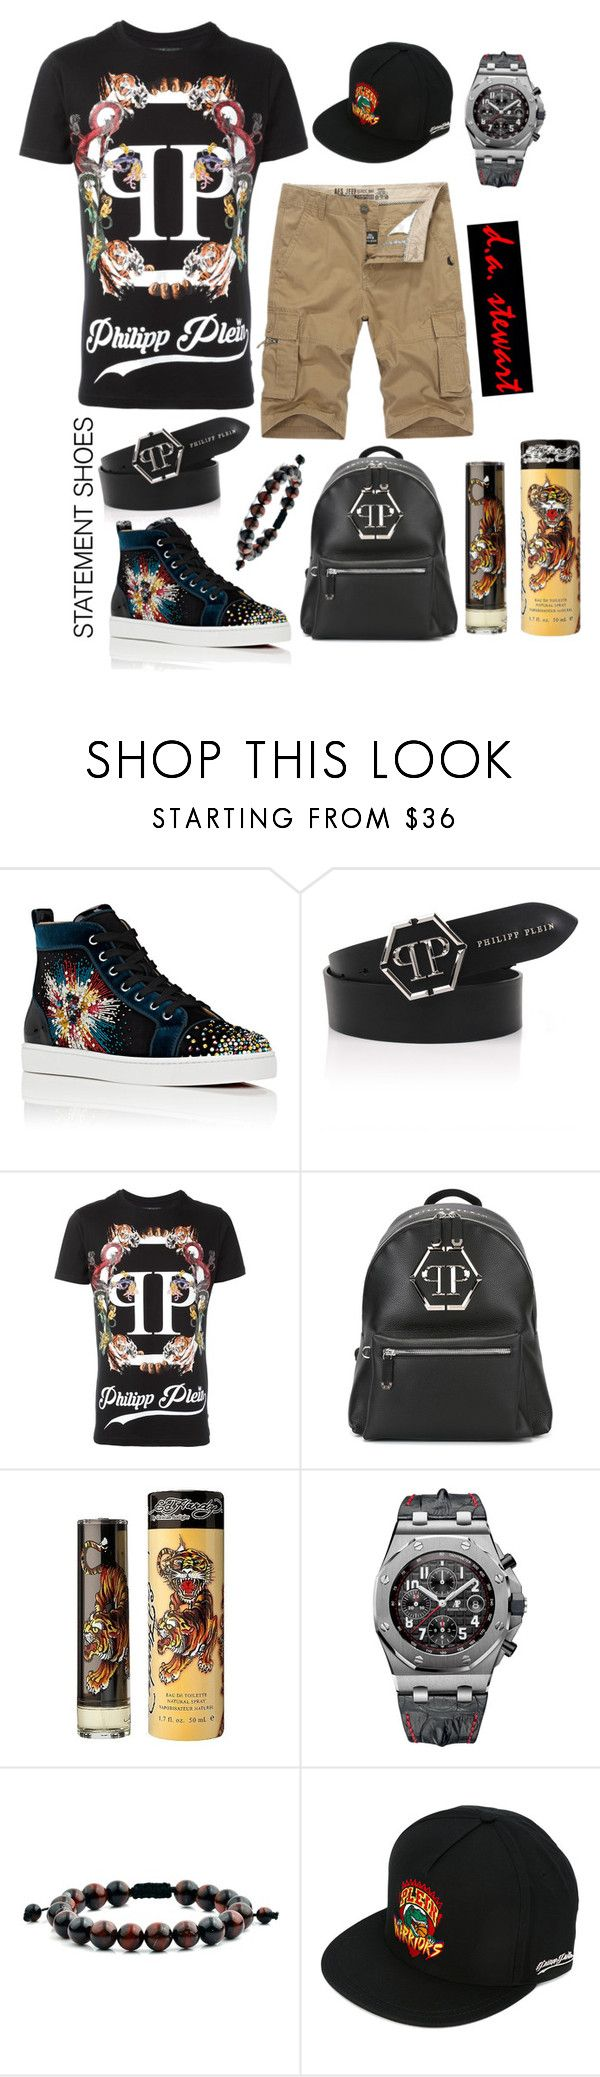 """""""d.a. stewart style"""" by dastewart ❤ liked on Polyvore featuring Christian Louboutin, Philipp Plein, Ed Hardy, Audemars Piguet, West Coast Jewelry, men's fashion and menswear"""